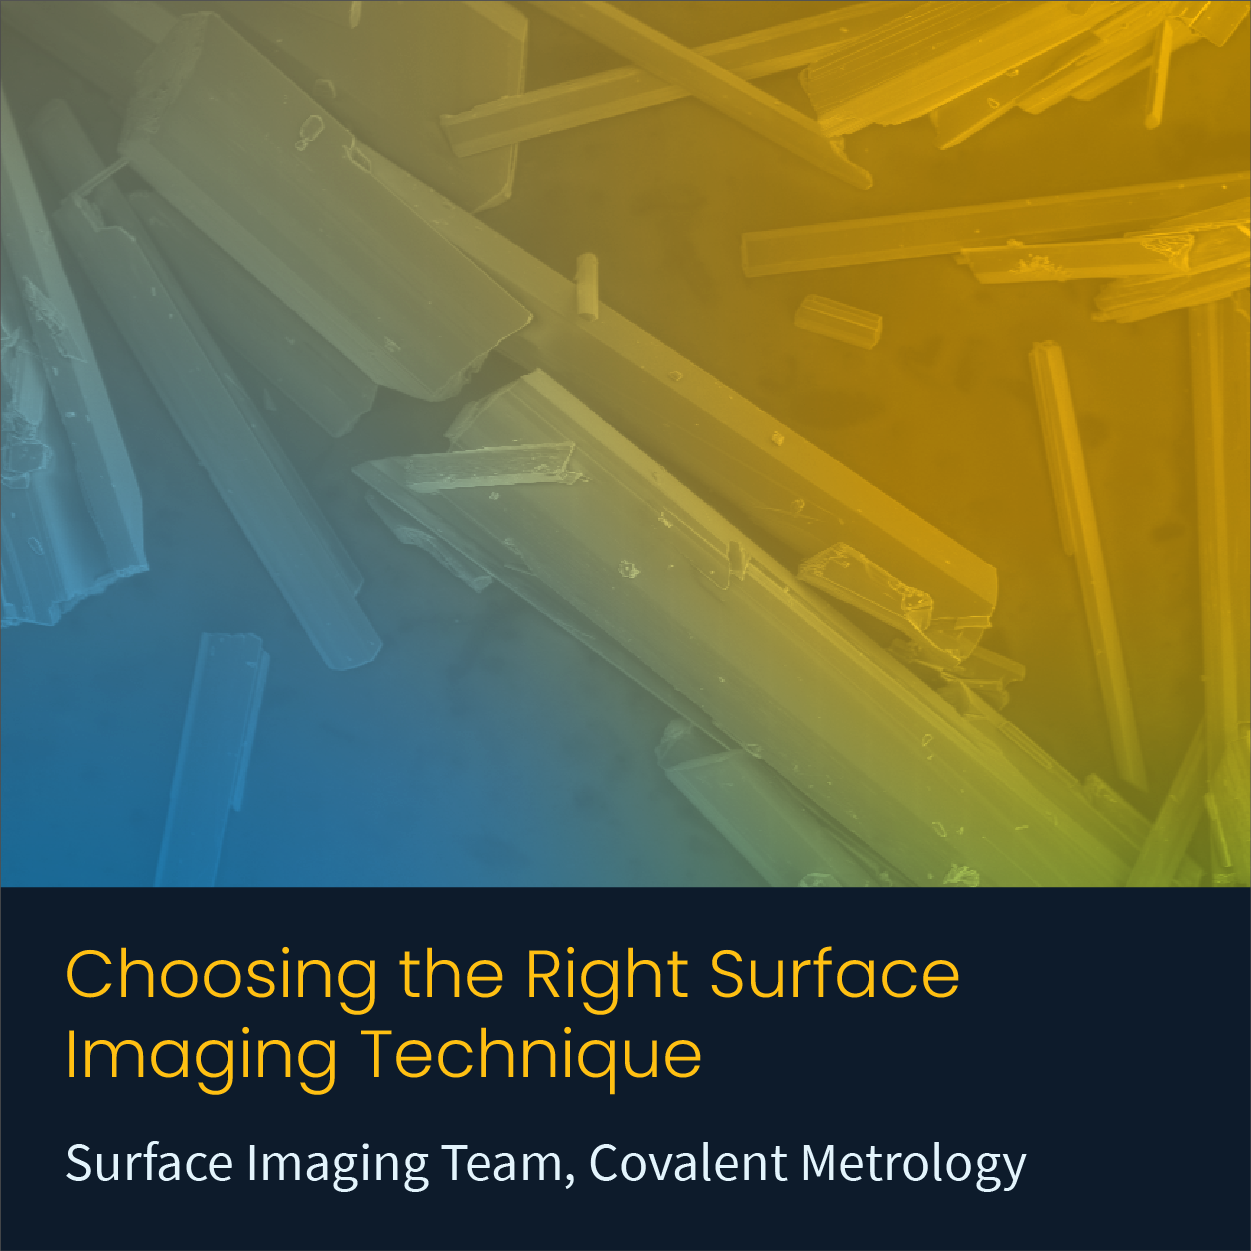 Choosing the Right Surface Imaging Technique